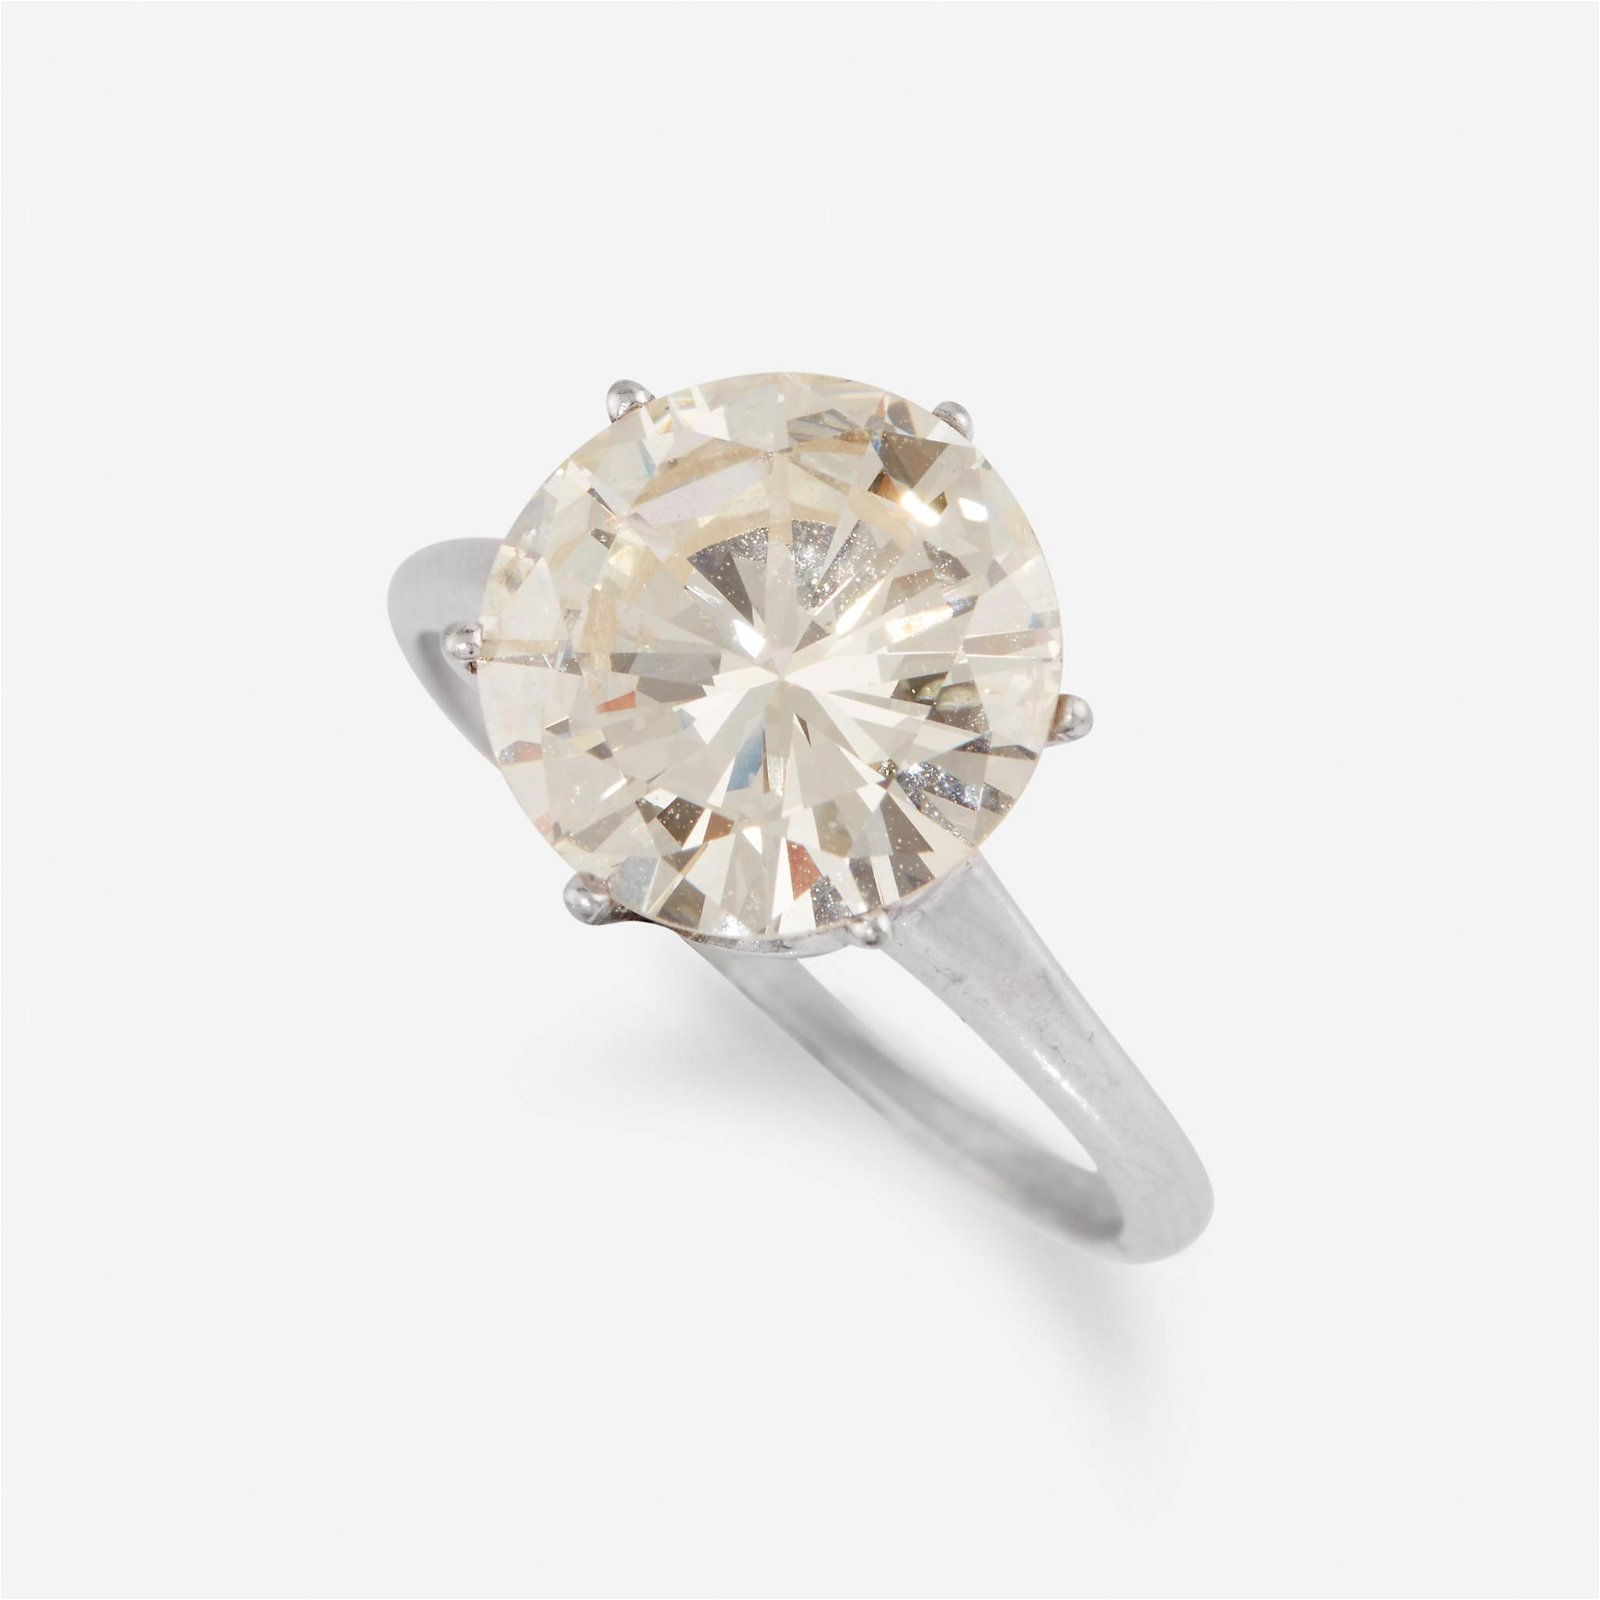 A diamond solitaire,